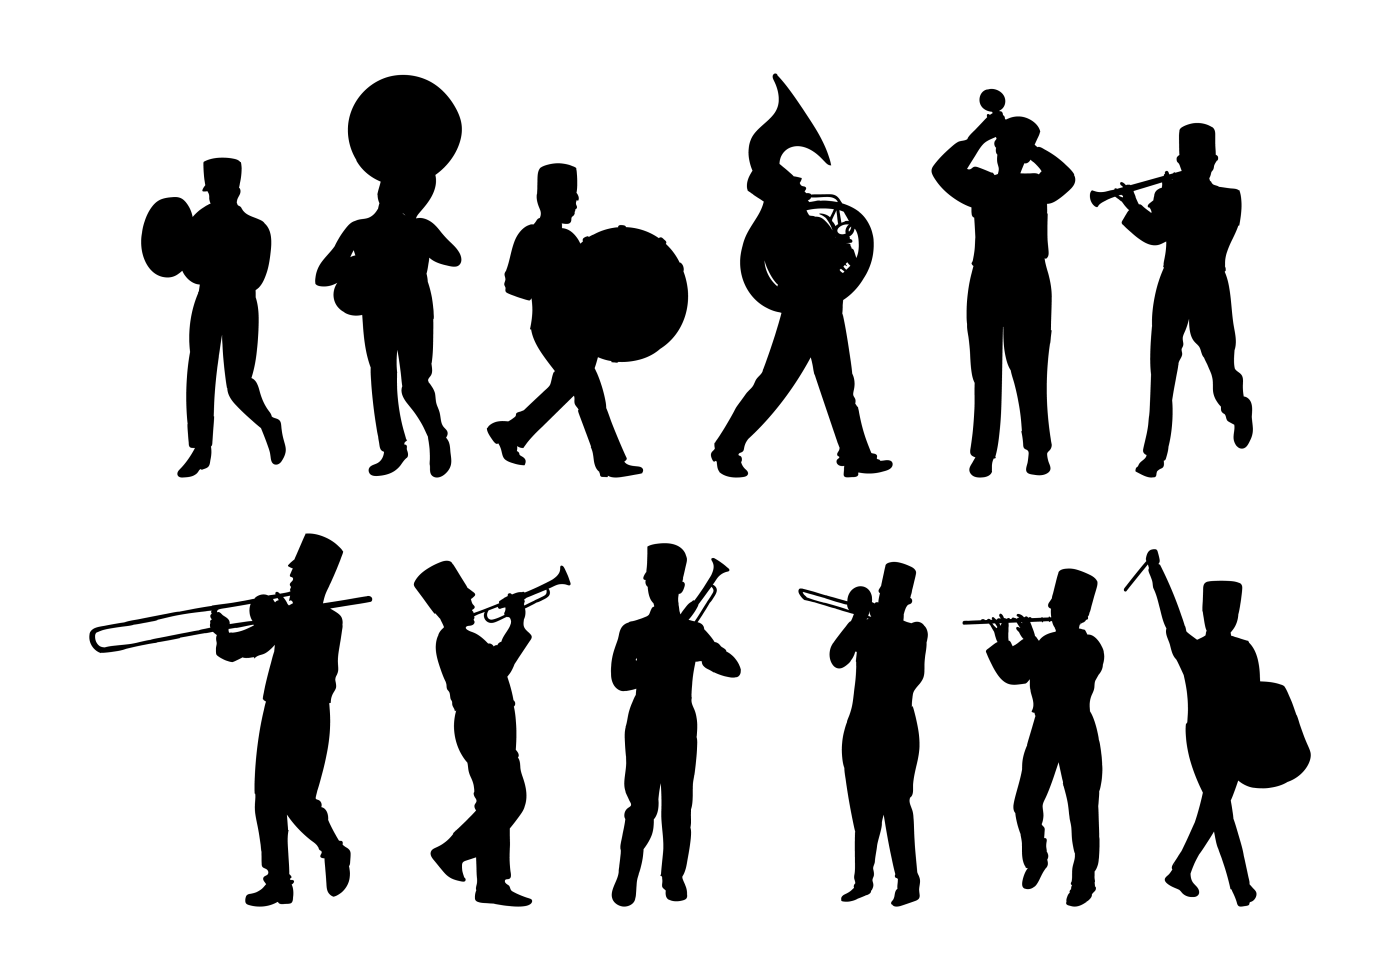 Marching Band Silhouettes Vector